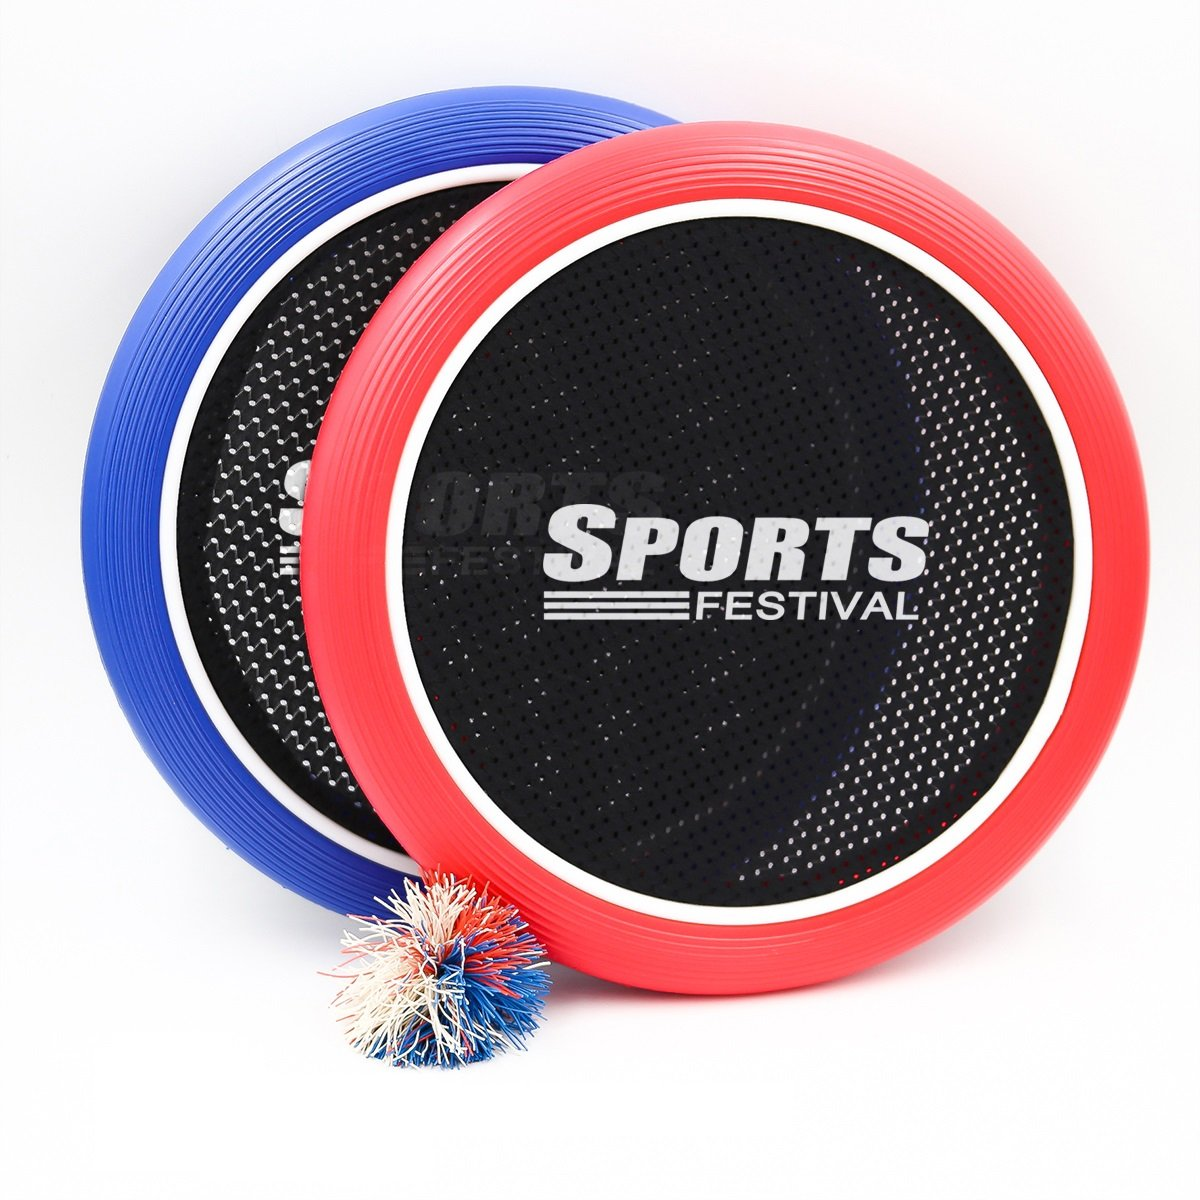 Sports Festival Slap Paddle Ball Hand Trampoline Super Disc Flying Disk Frisbee Bounce Game with Set of 2 with 1 Colorful Super Koosh Rubberband Bouncy Ball by Sports Festival ®